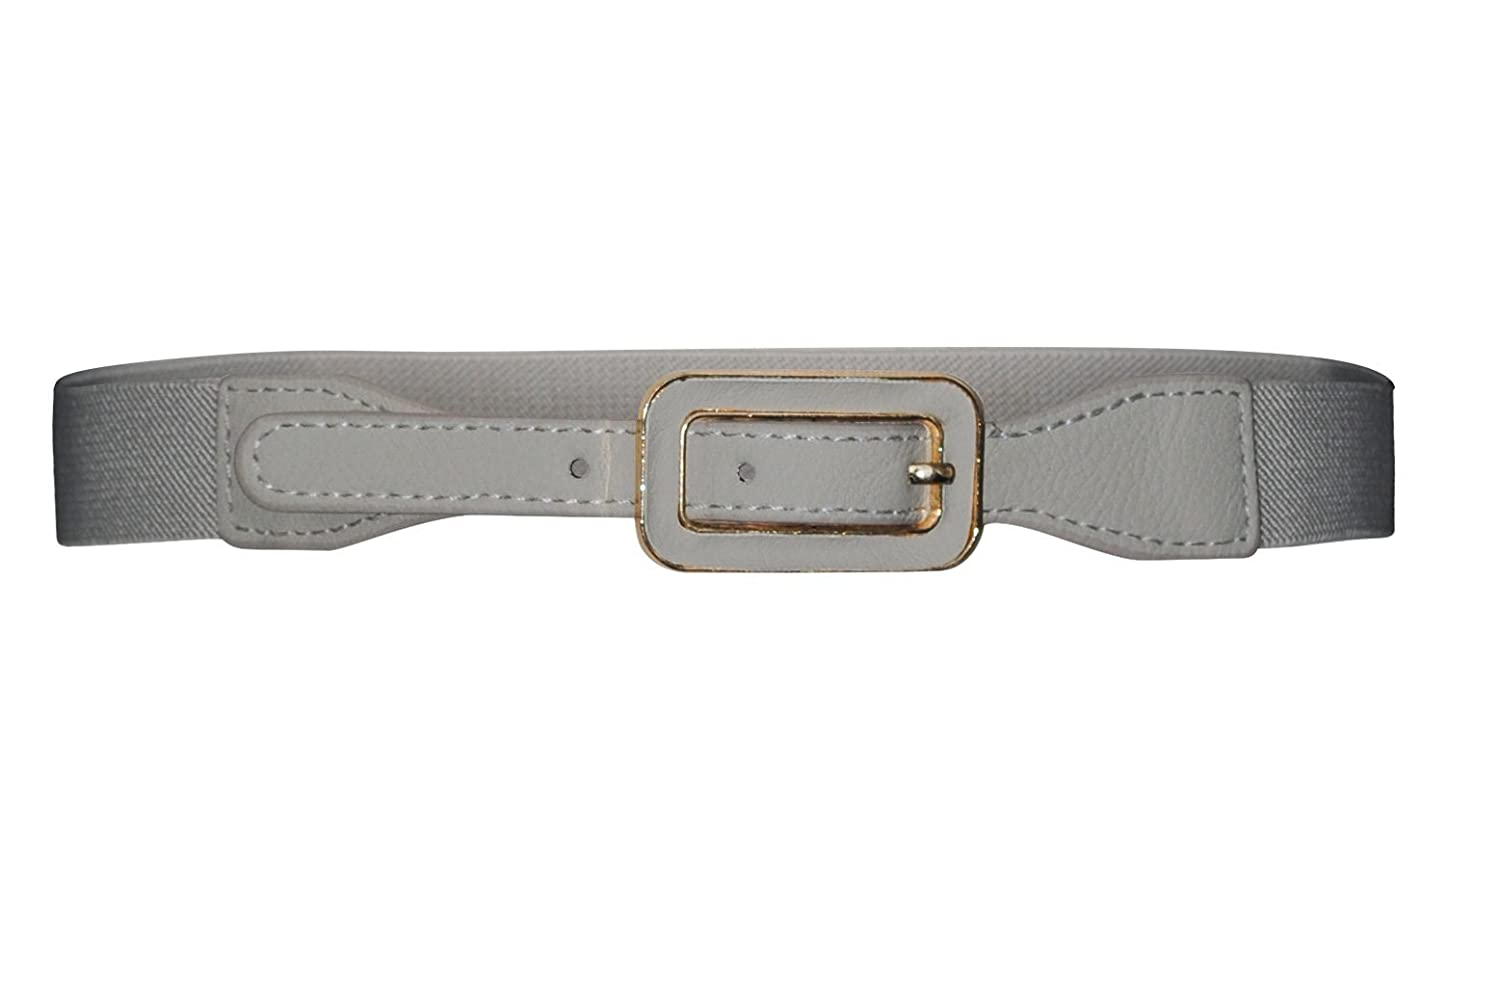 Thin Spandex Belt in Taupe